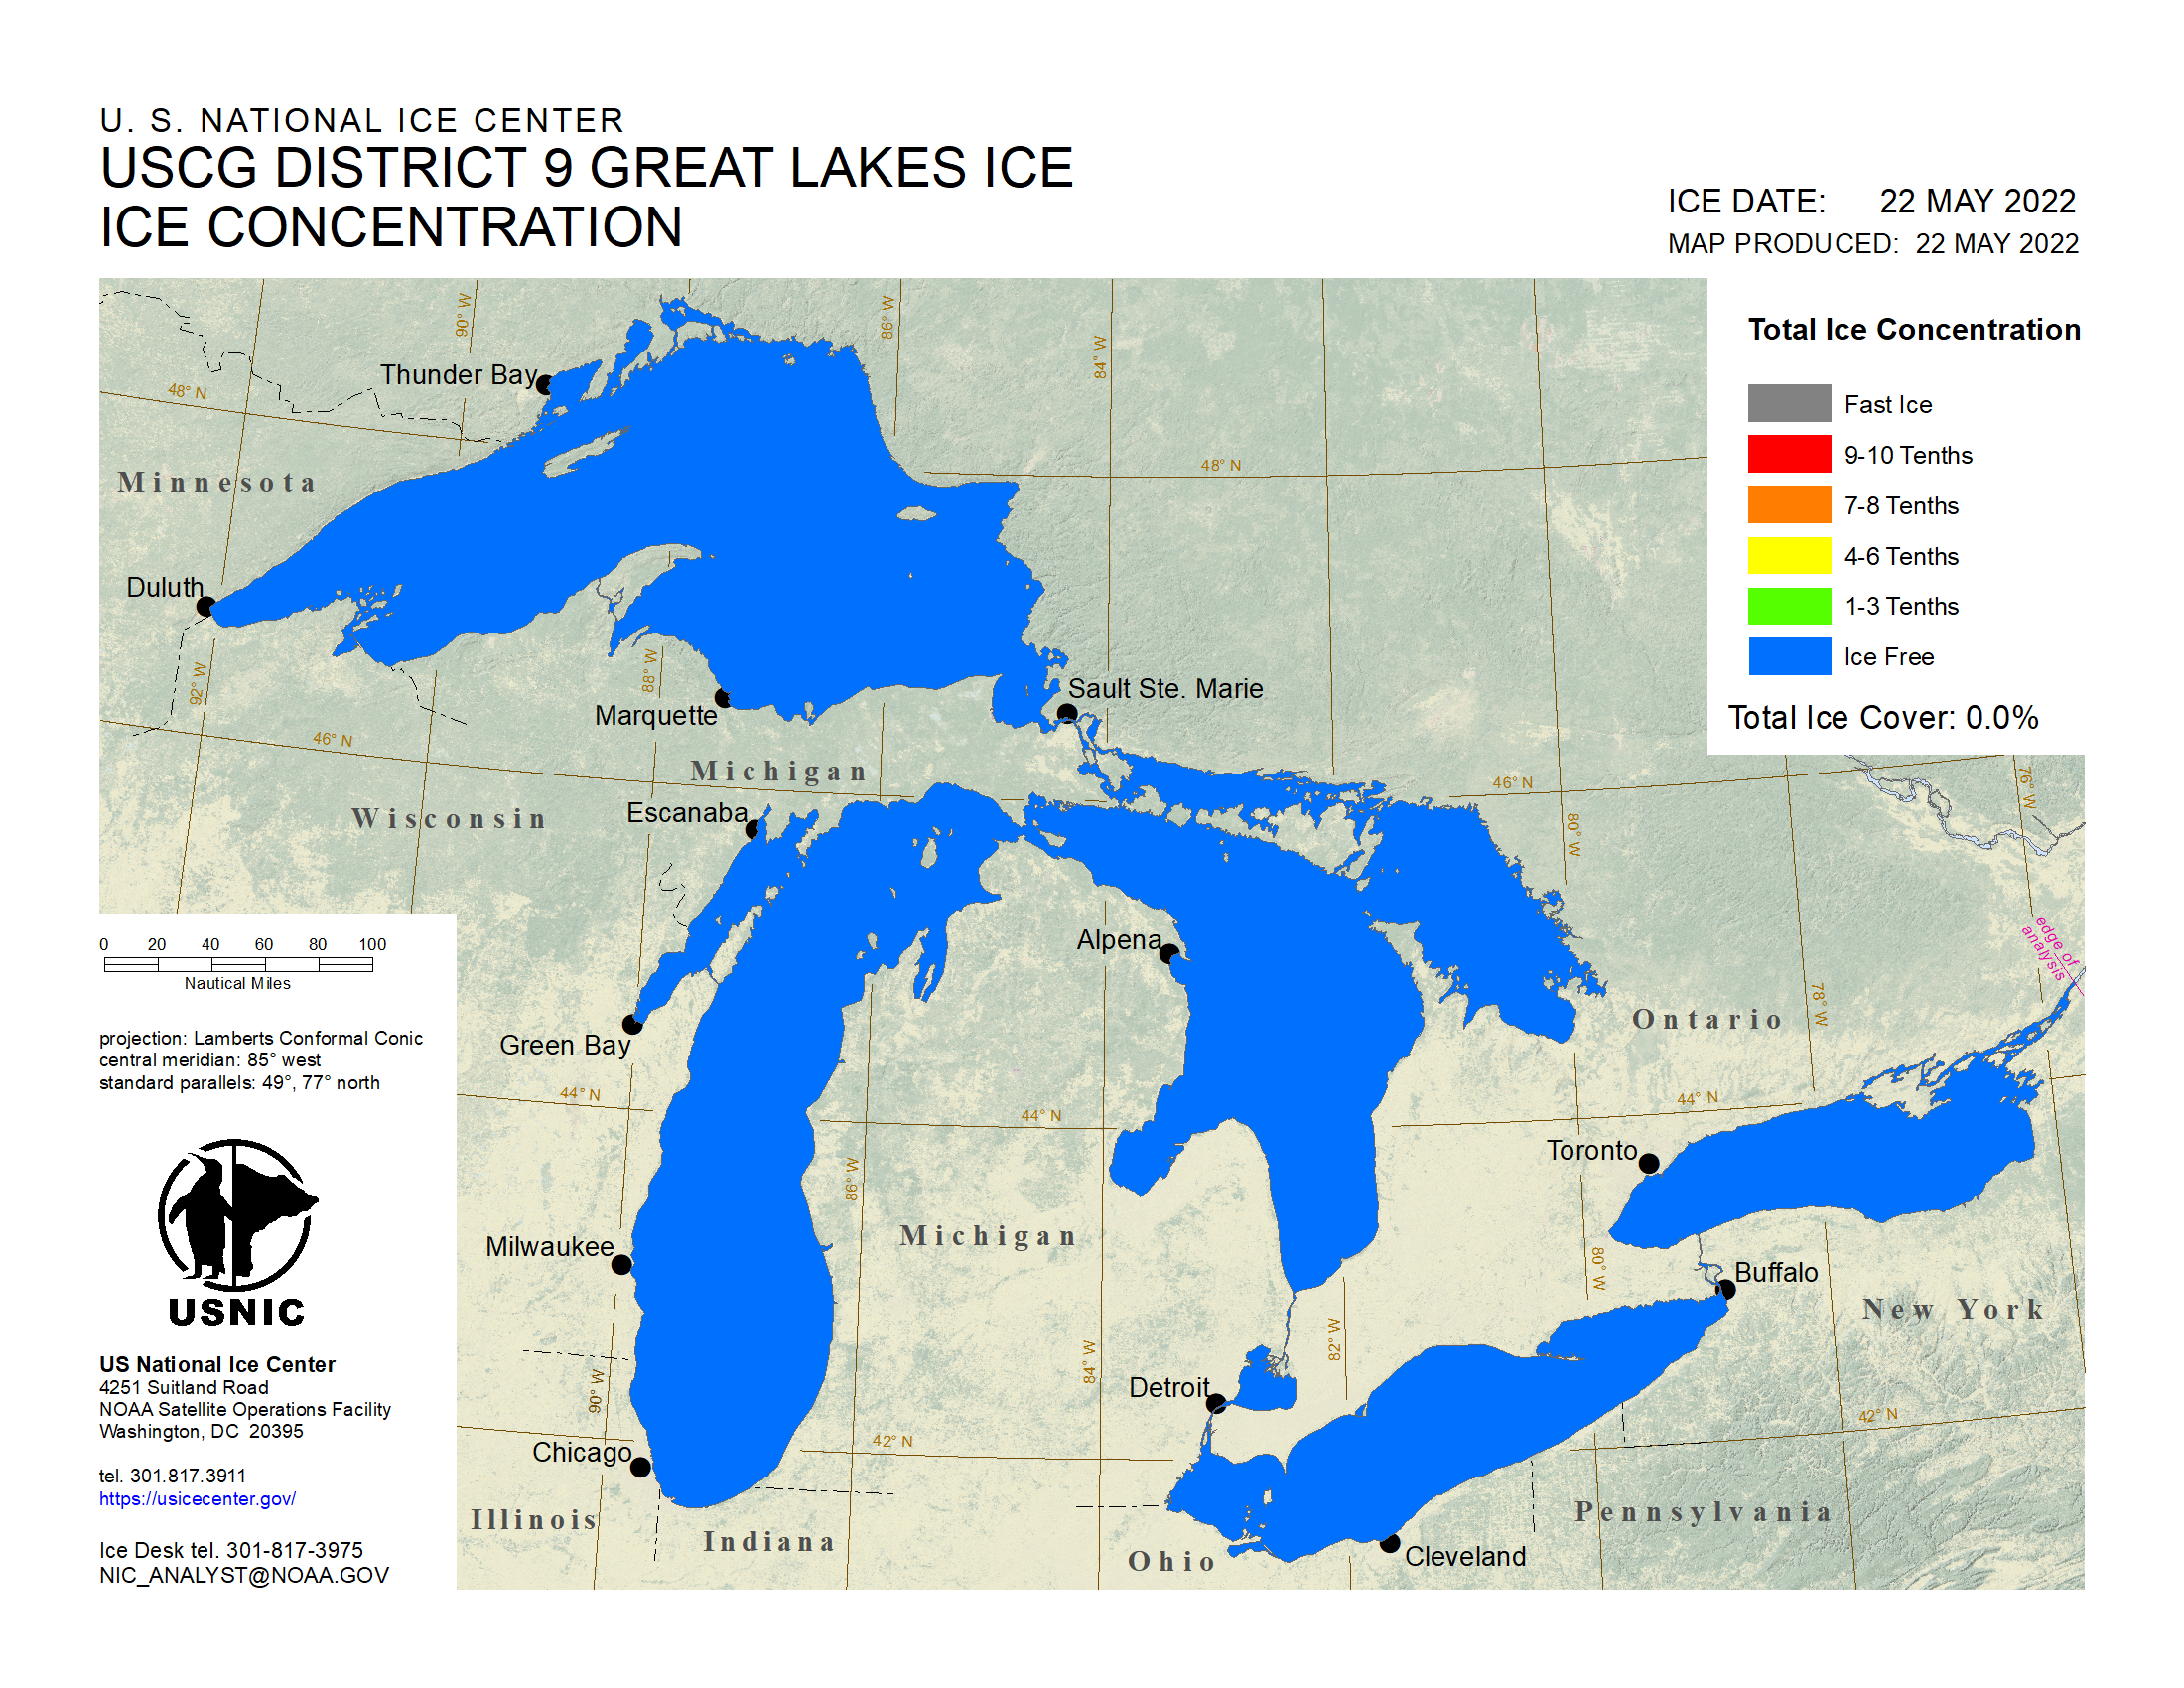 Great Lakes Ice Analysis - Concentration